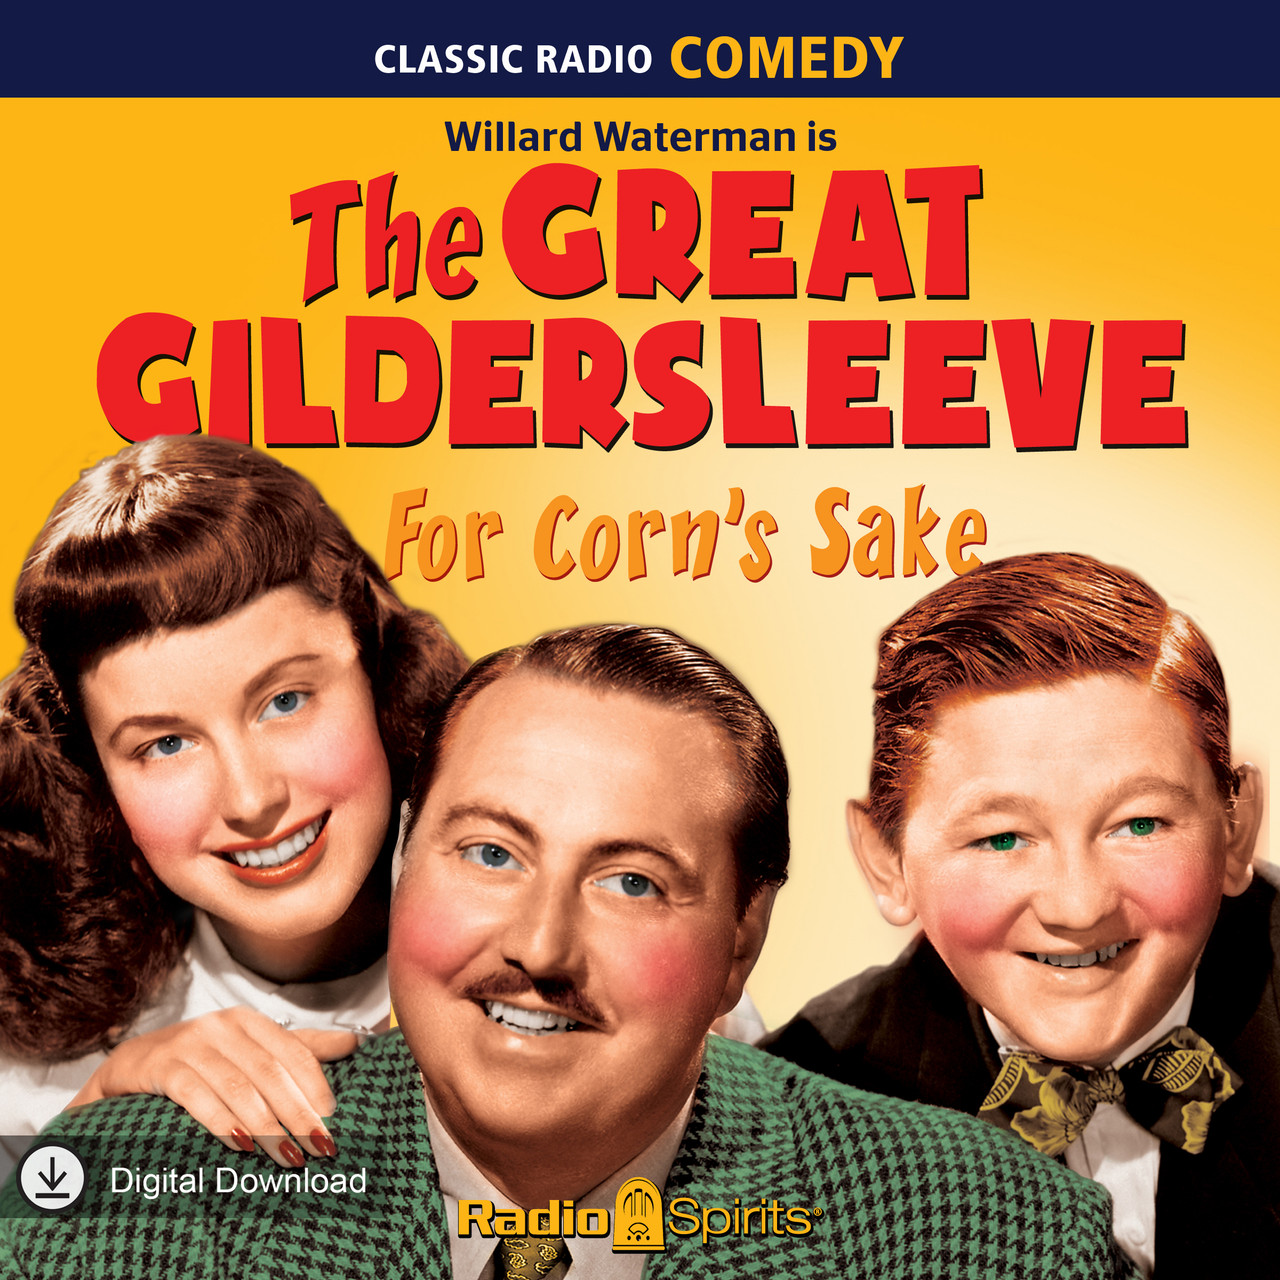 The Great Gildersleeve: For Corn's Sake (MP3 Download)